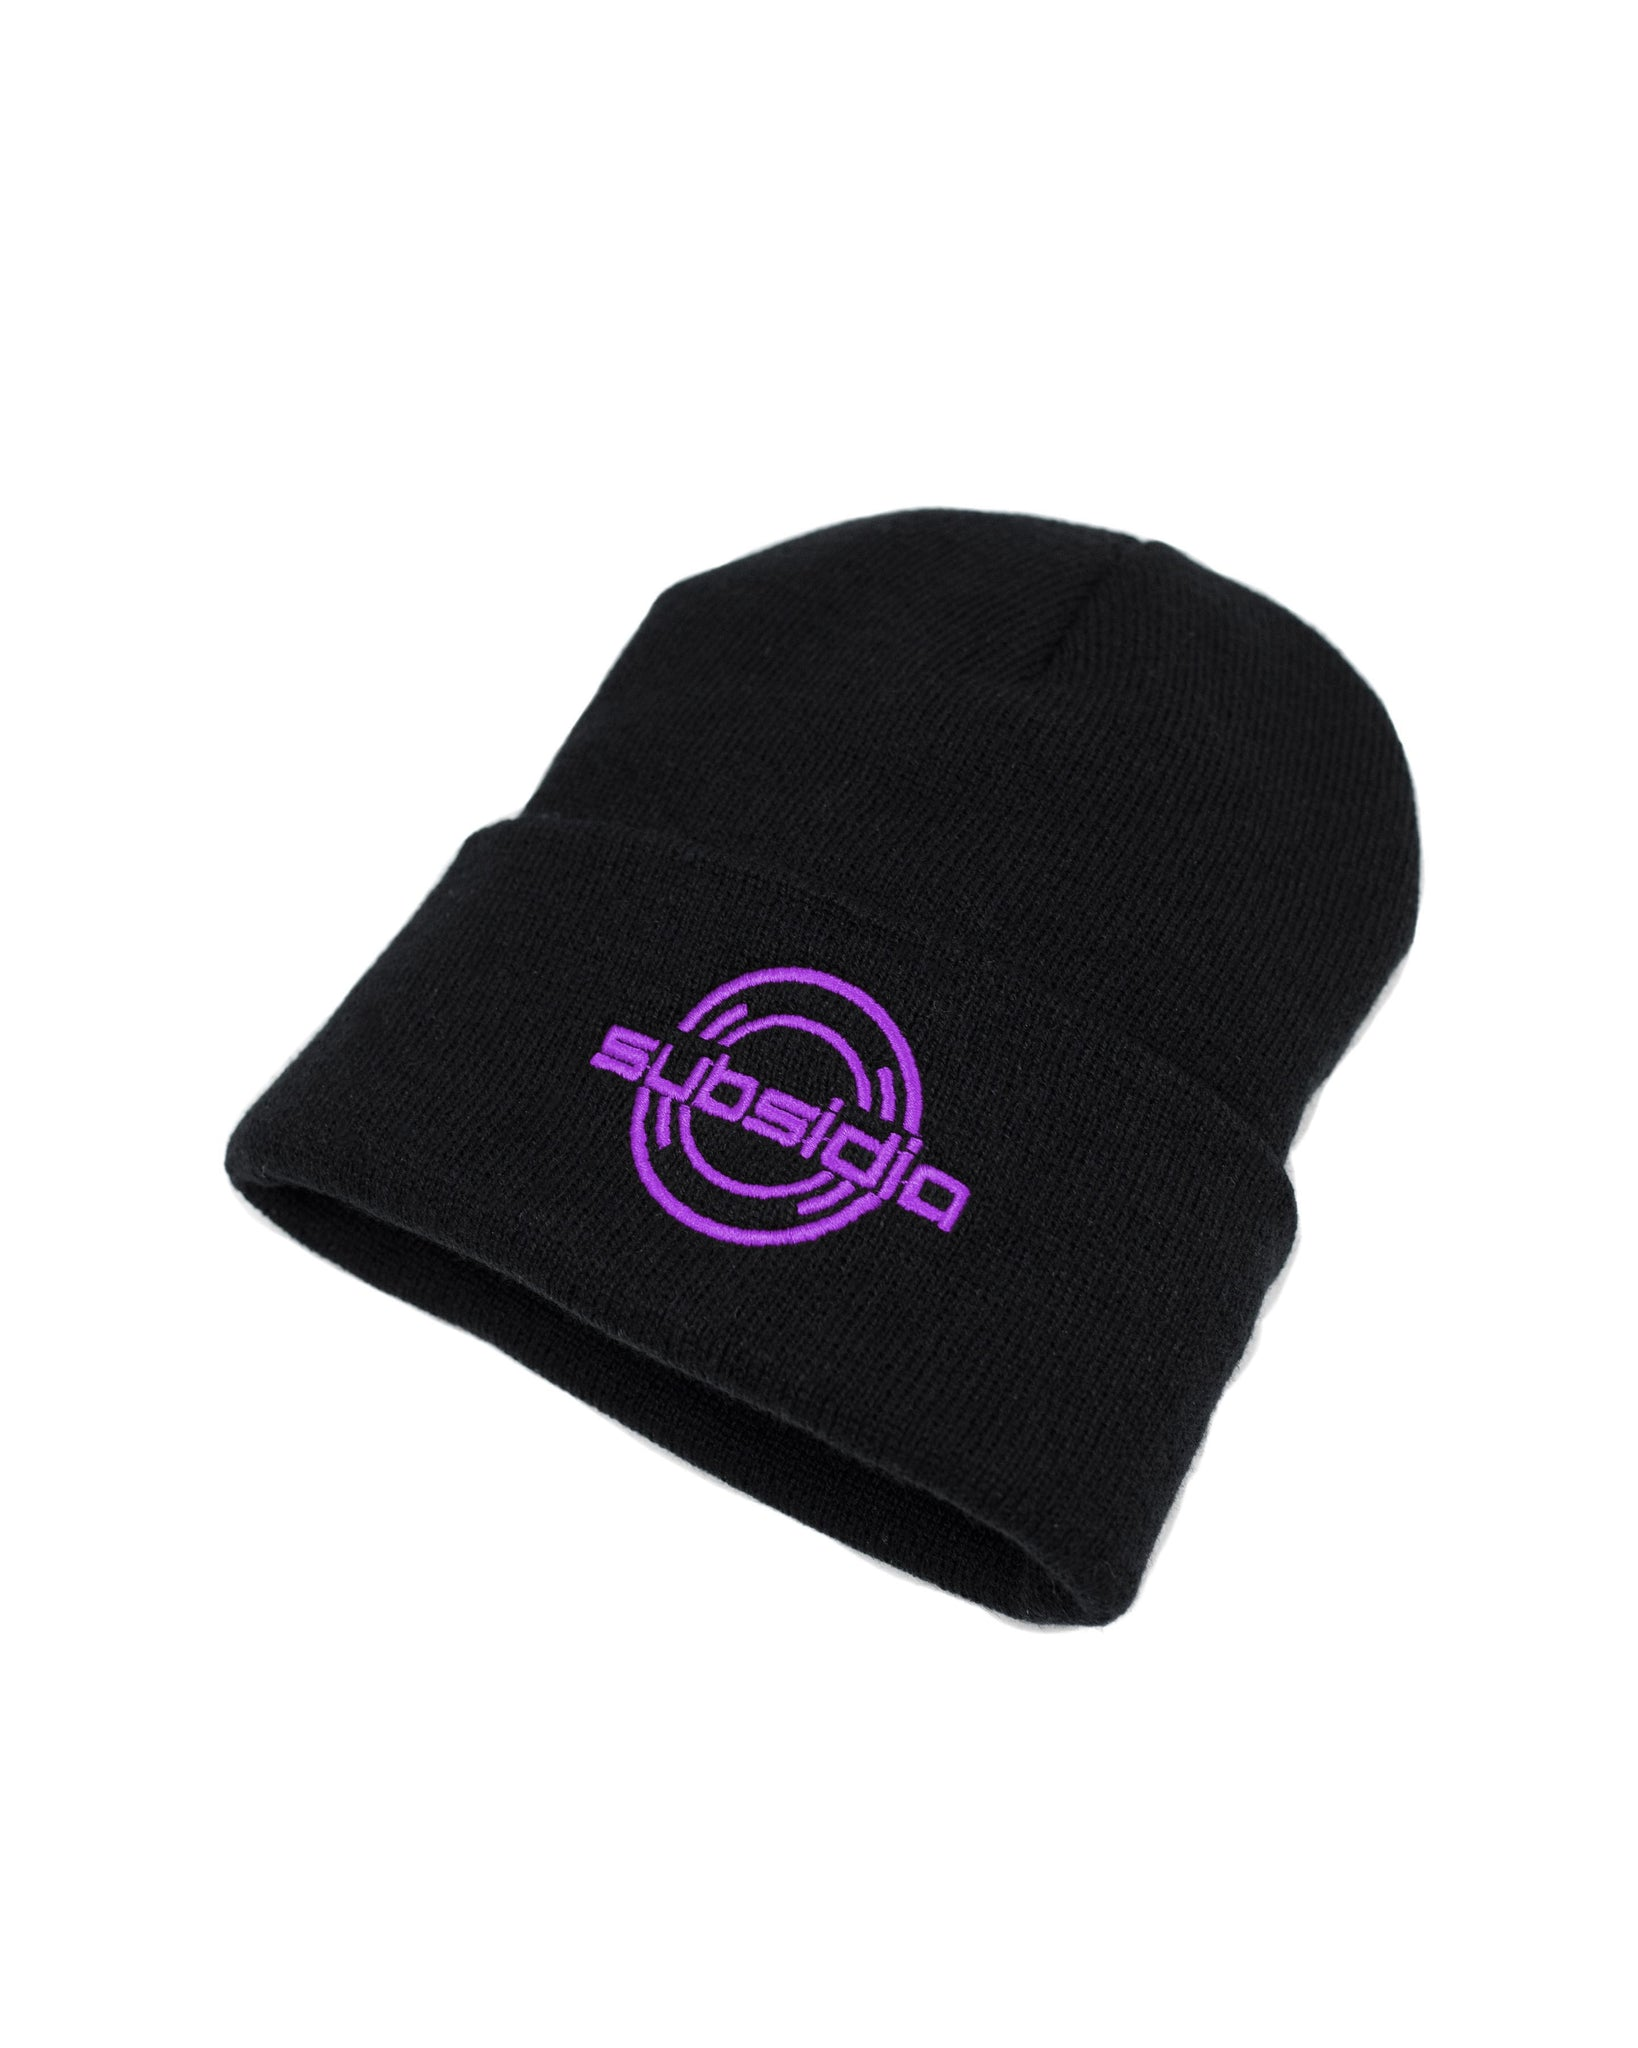 'Subsidia' Beanie - Black/Purple